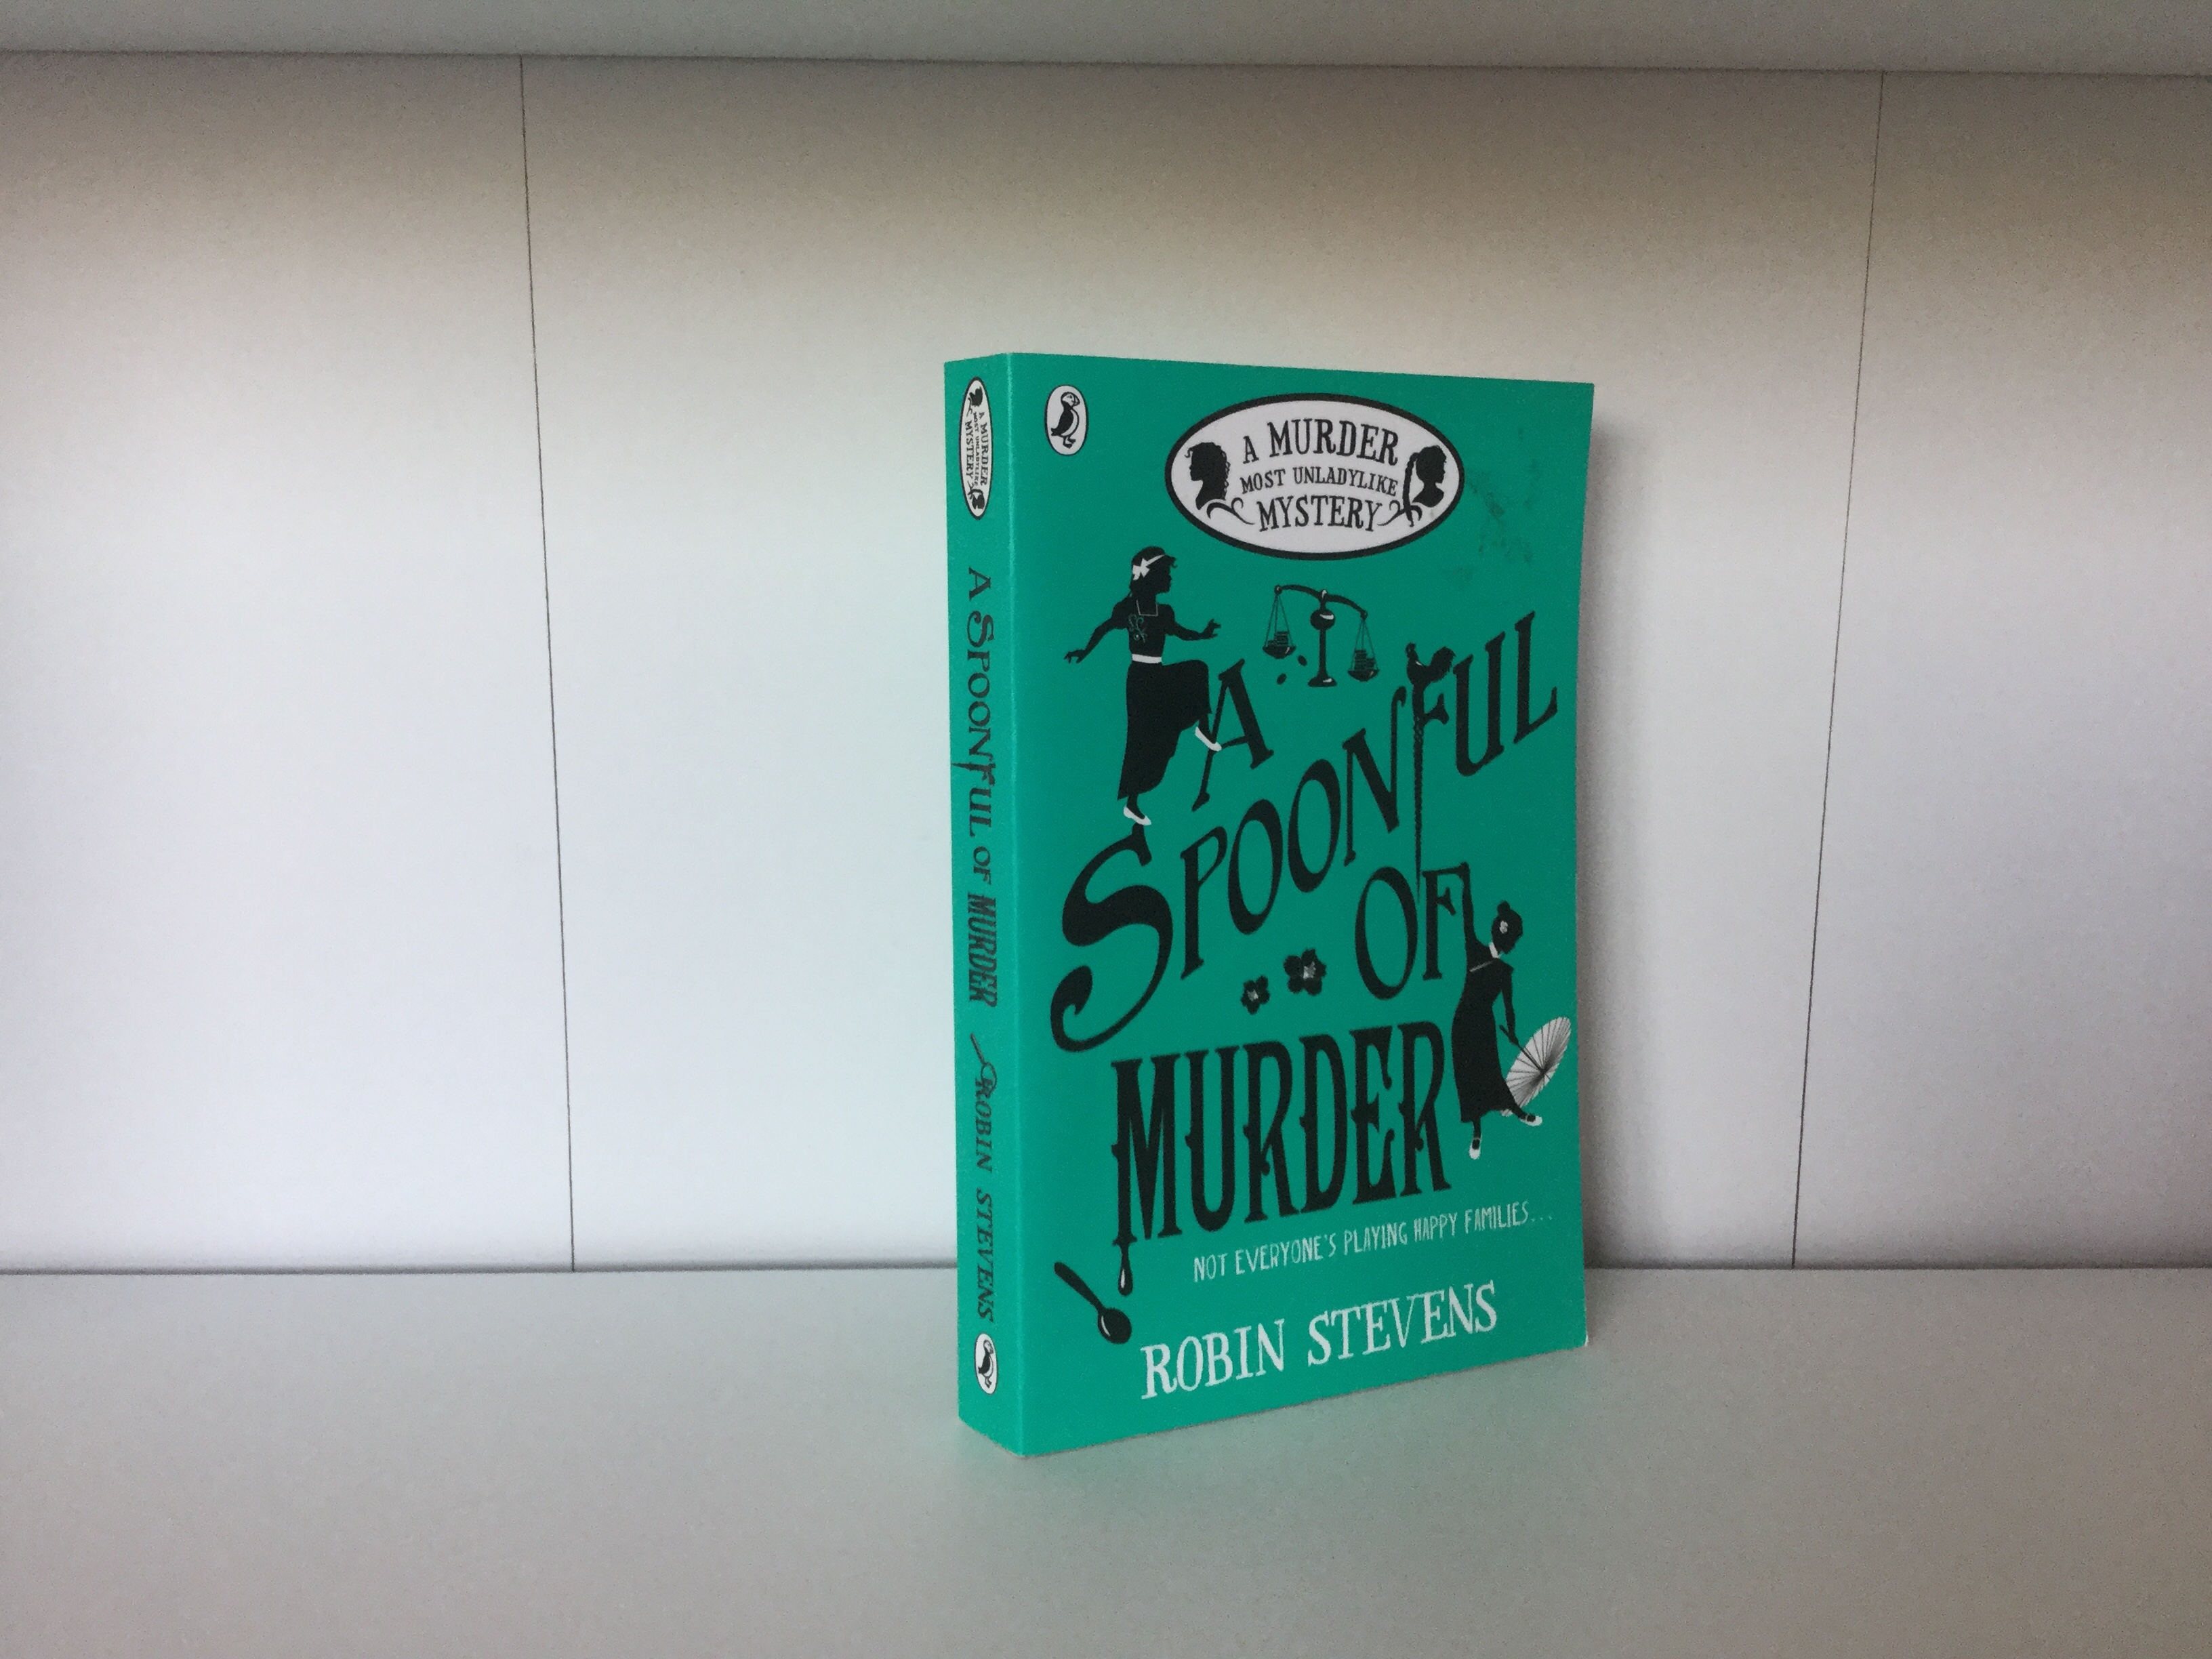 The cover of A Spoonful of Murder by Robin Stevens